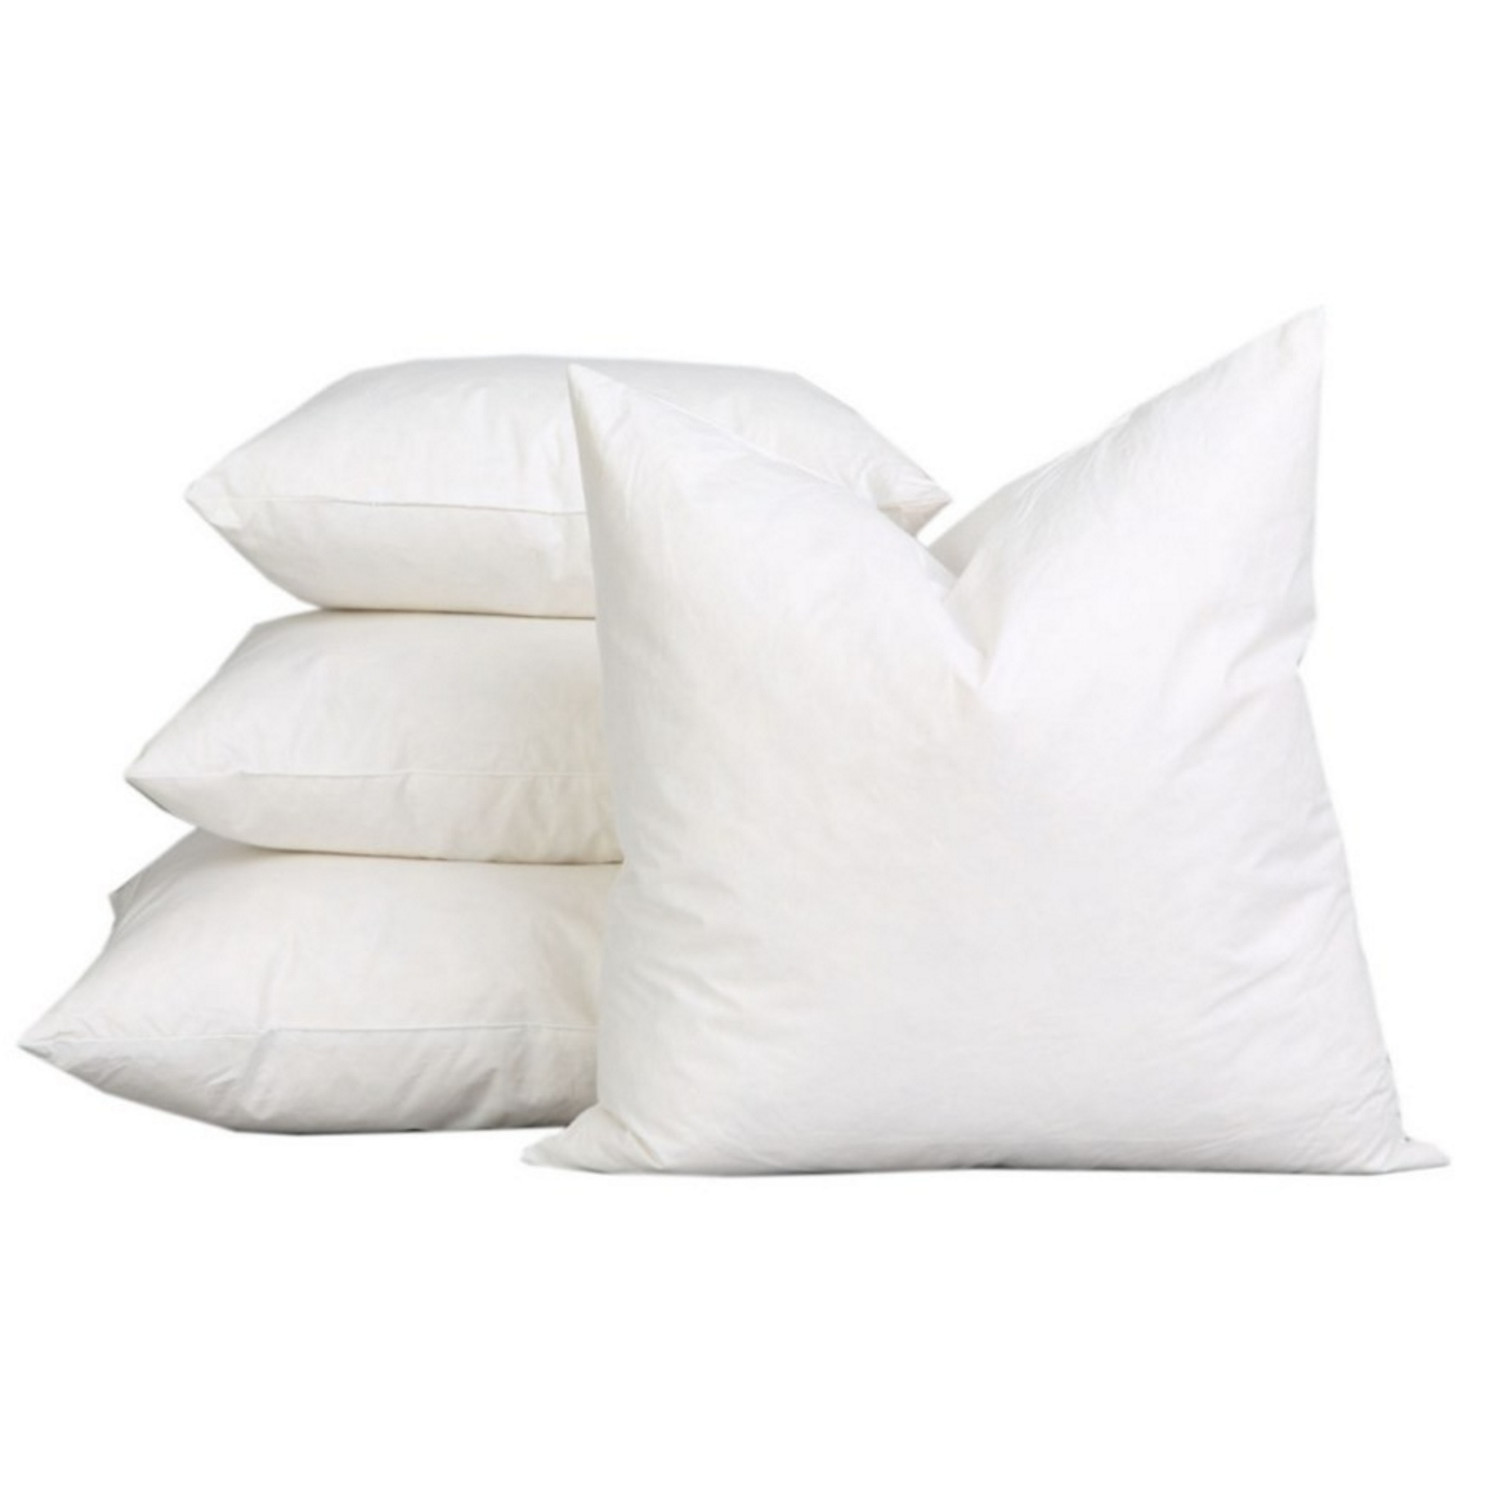 a1hc sterilized extra fluff and durable 100 cotton pillow insert set of 2